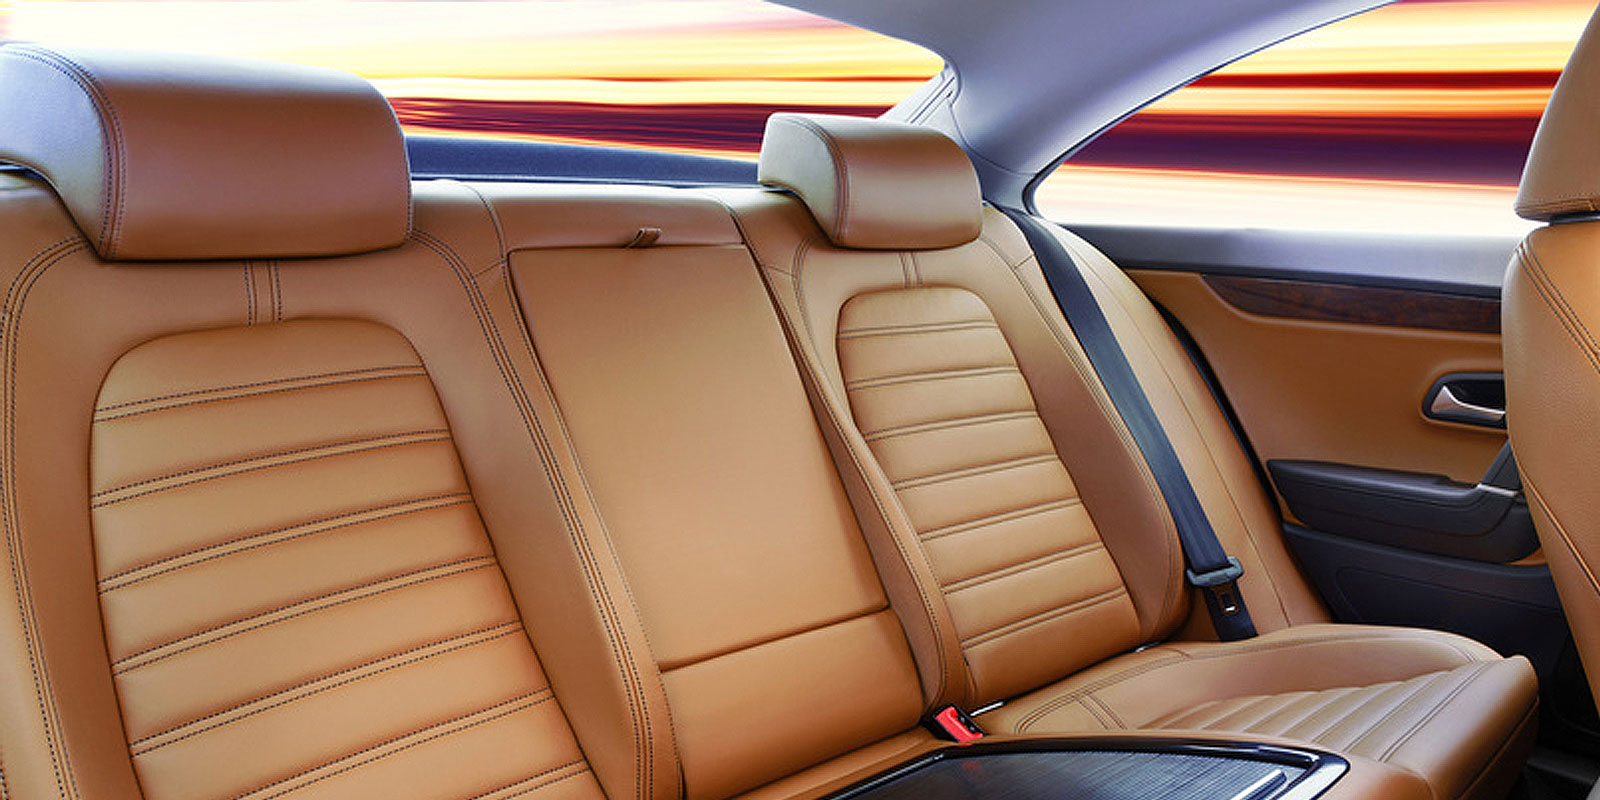 An International Manufacturer Of Automotive Leather Trims Riding In Style And Luxury Quality